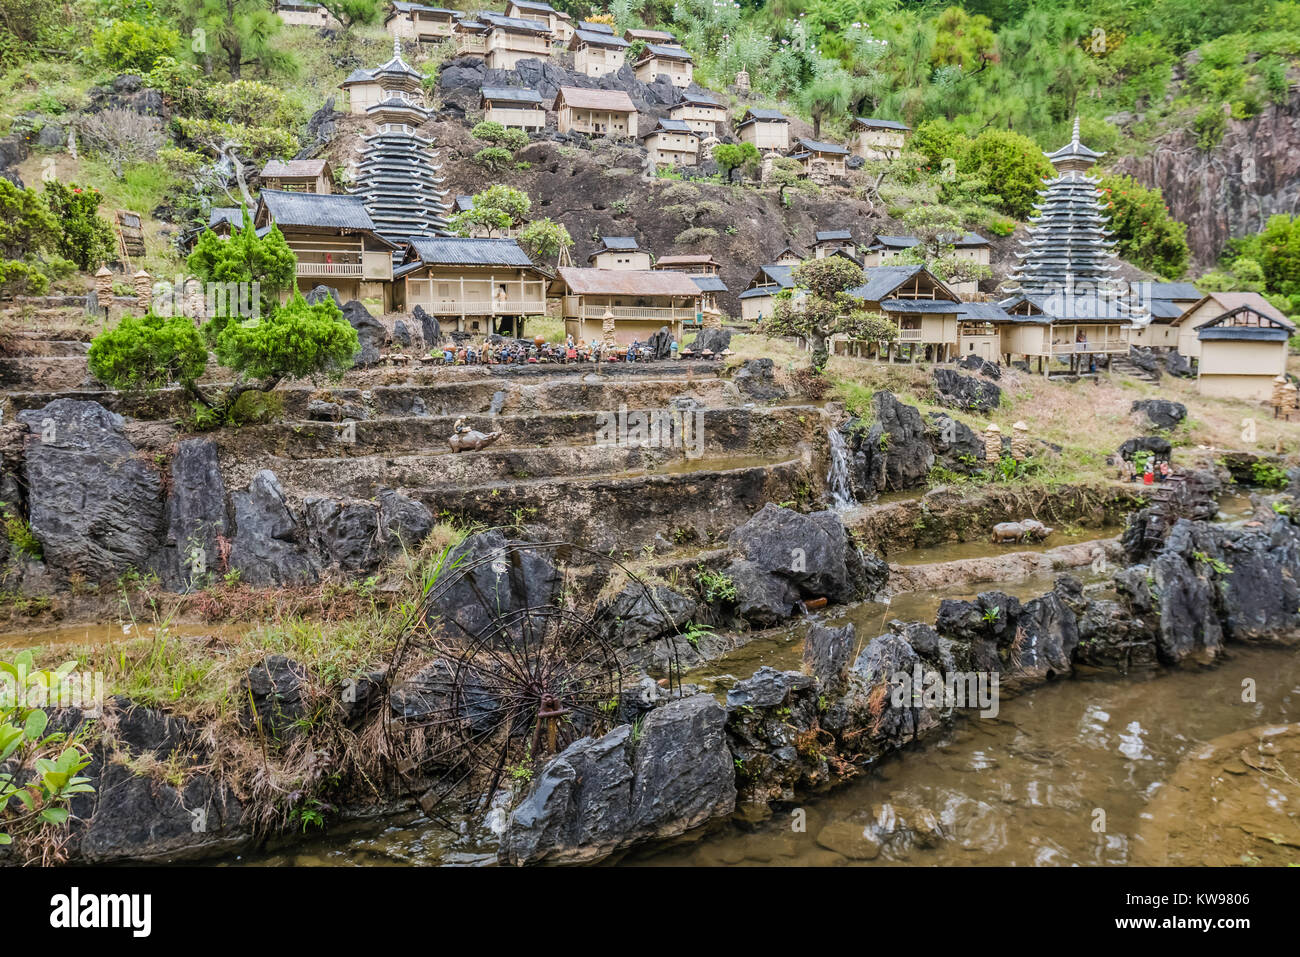 chinese landmark miniature version - Stock Image